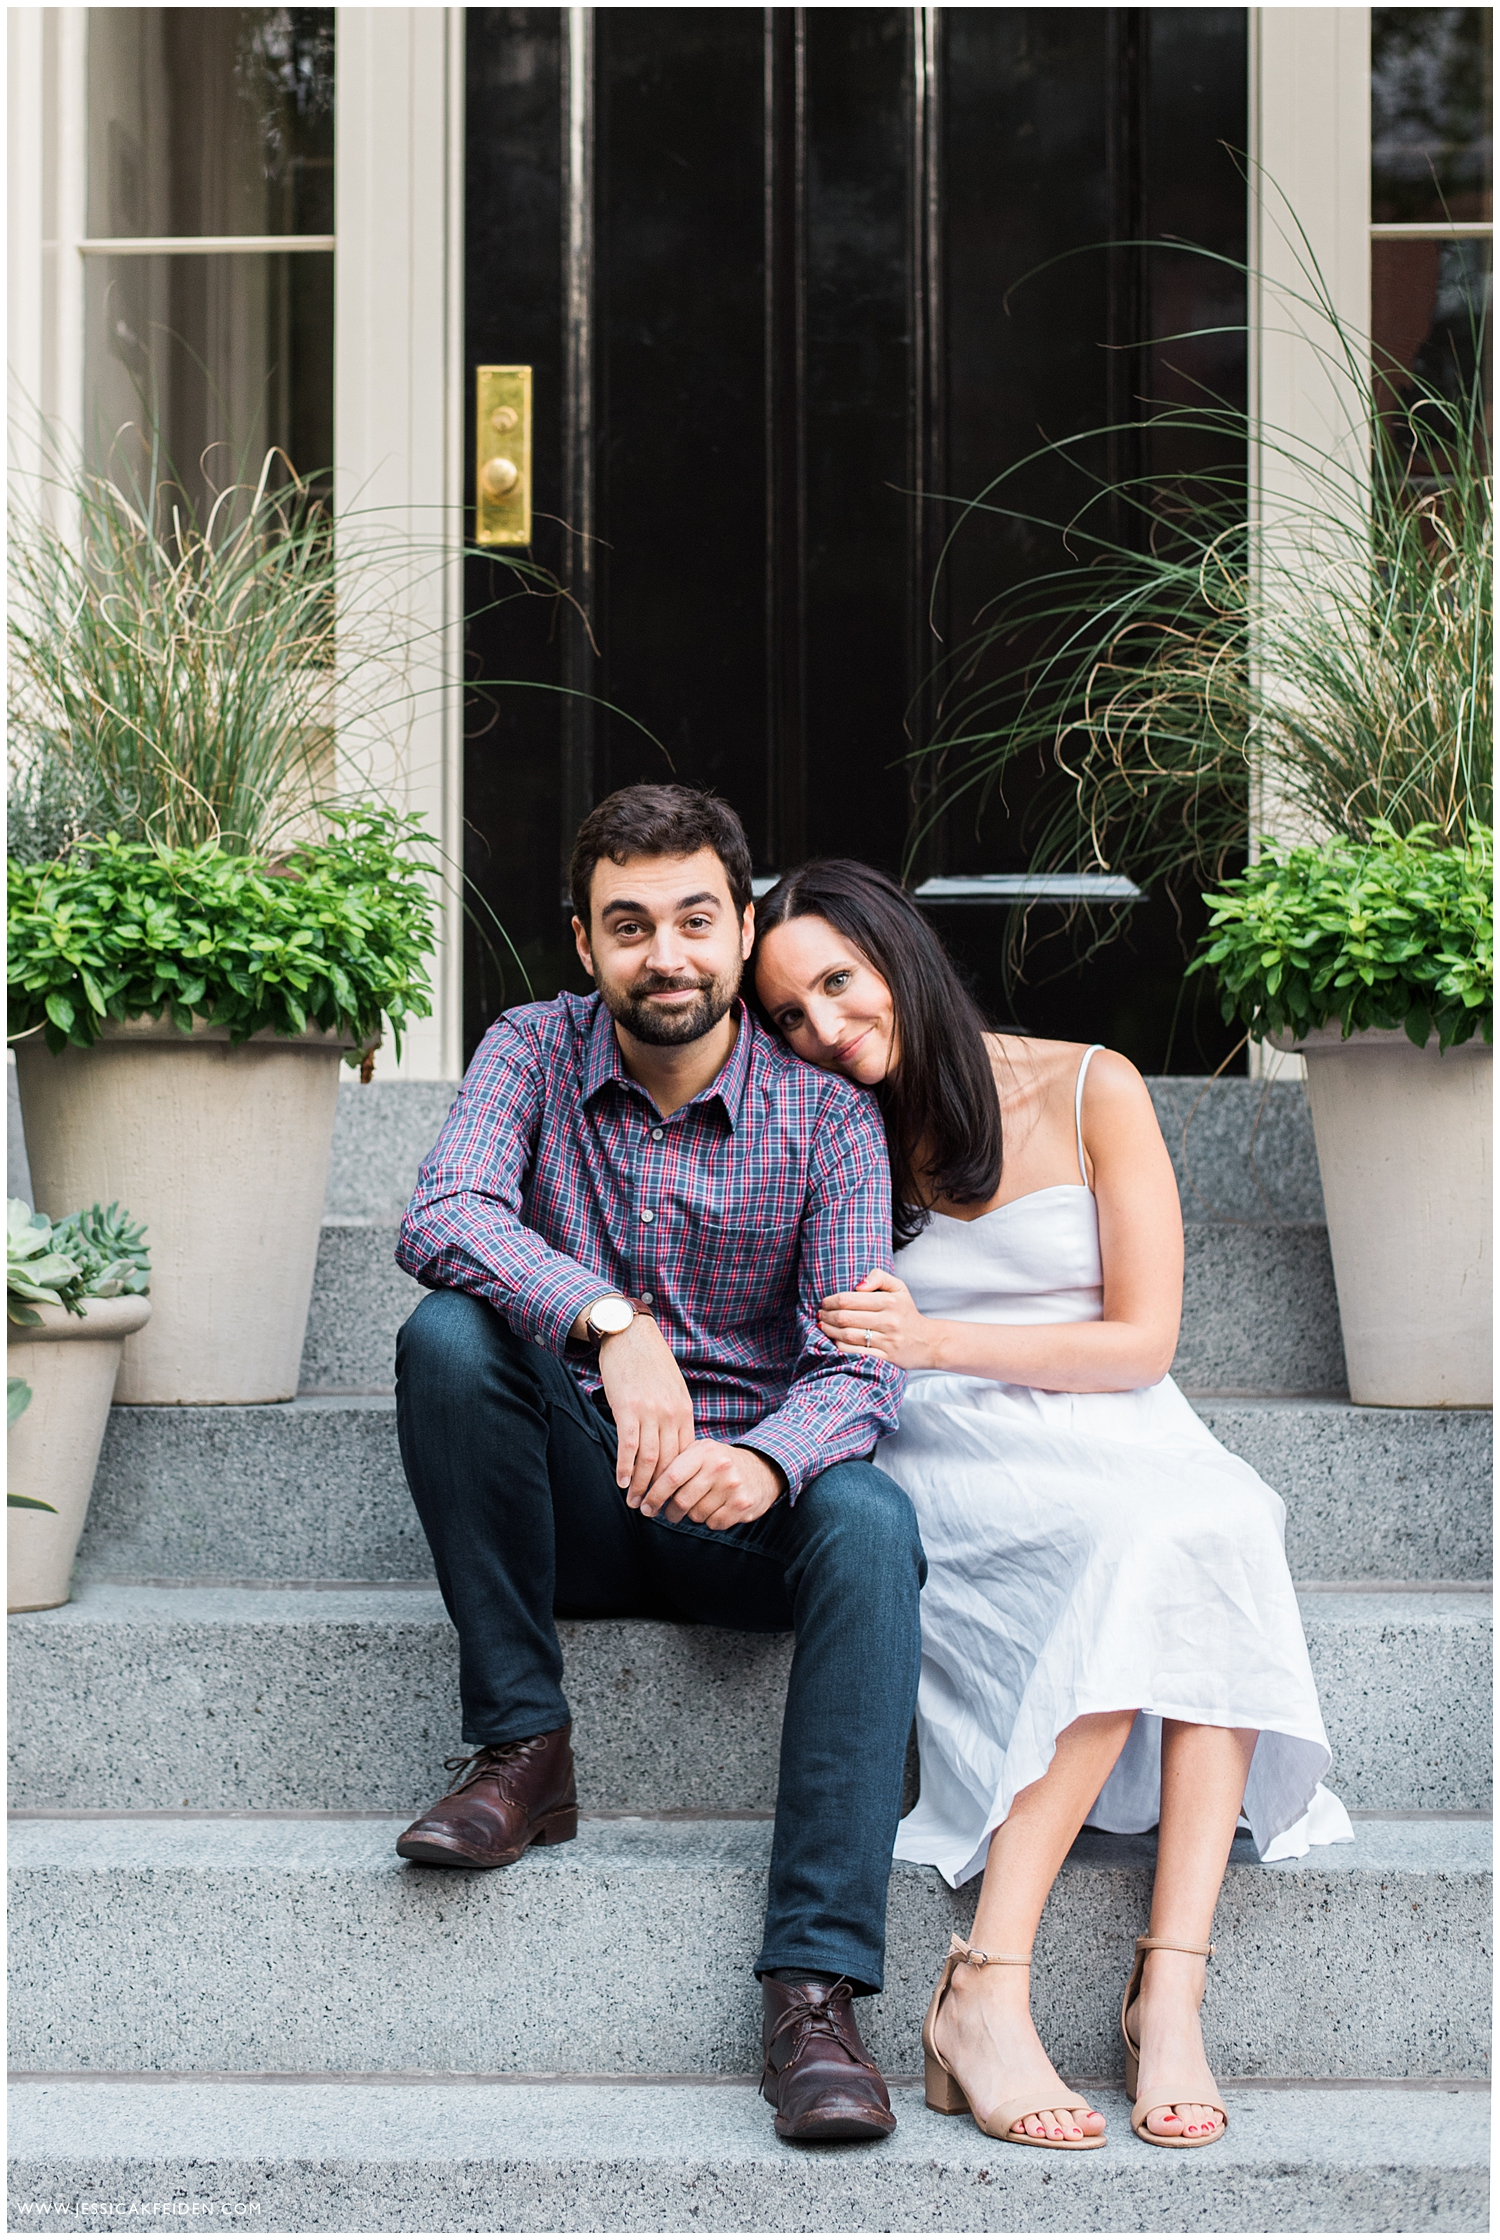 Jessica K Feiden Photography_Beacon Hill Boston Engagement Session Photographer_0004.jpg